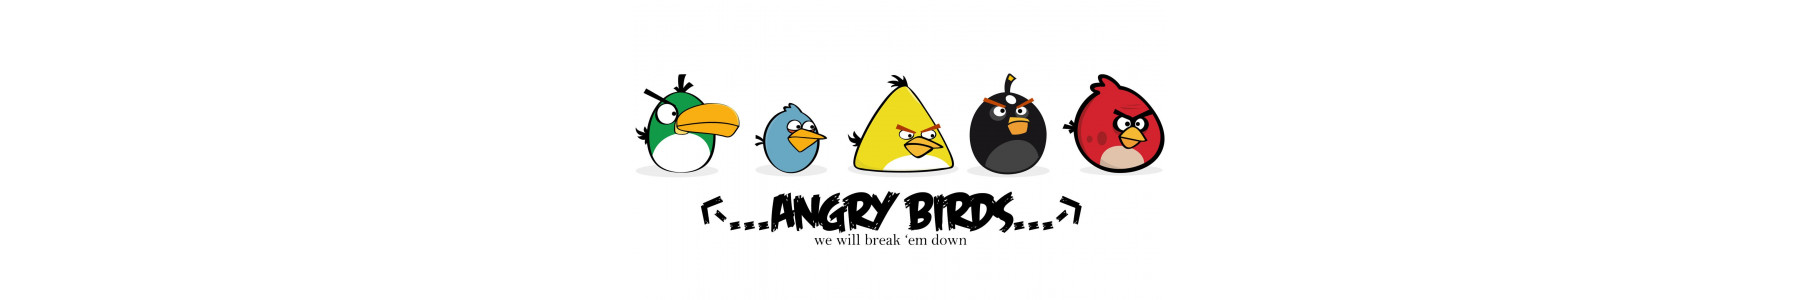 Articole party Angry Birds